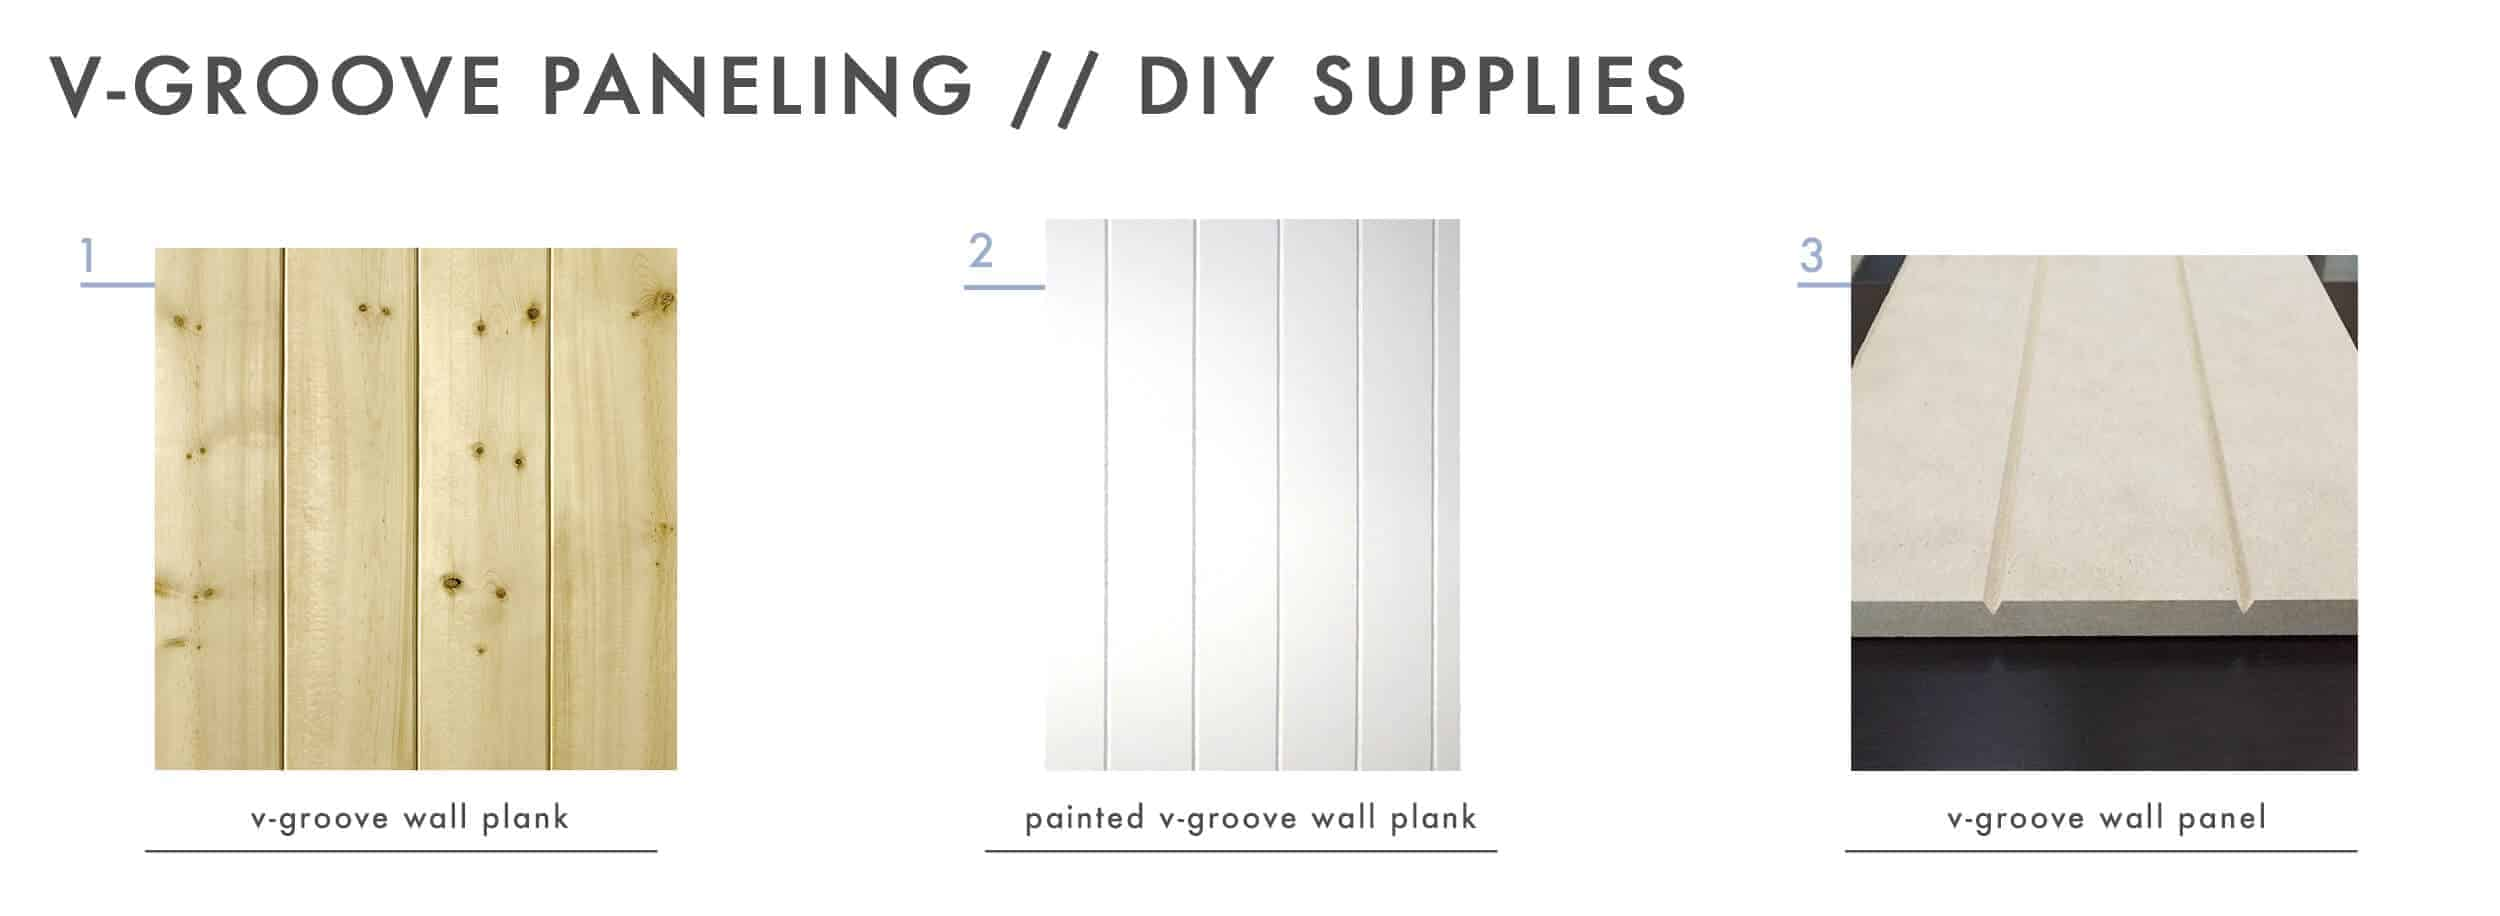 How To Add Character And Charm To Boring Architecture And Houses V Groove Paneling Diy Supplies